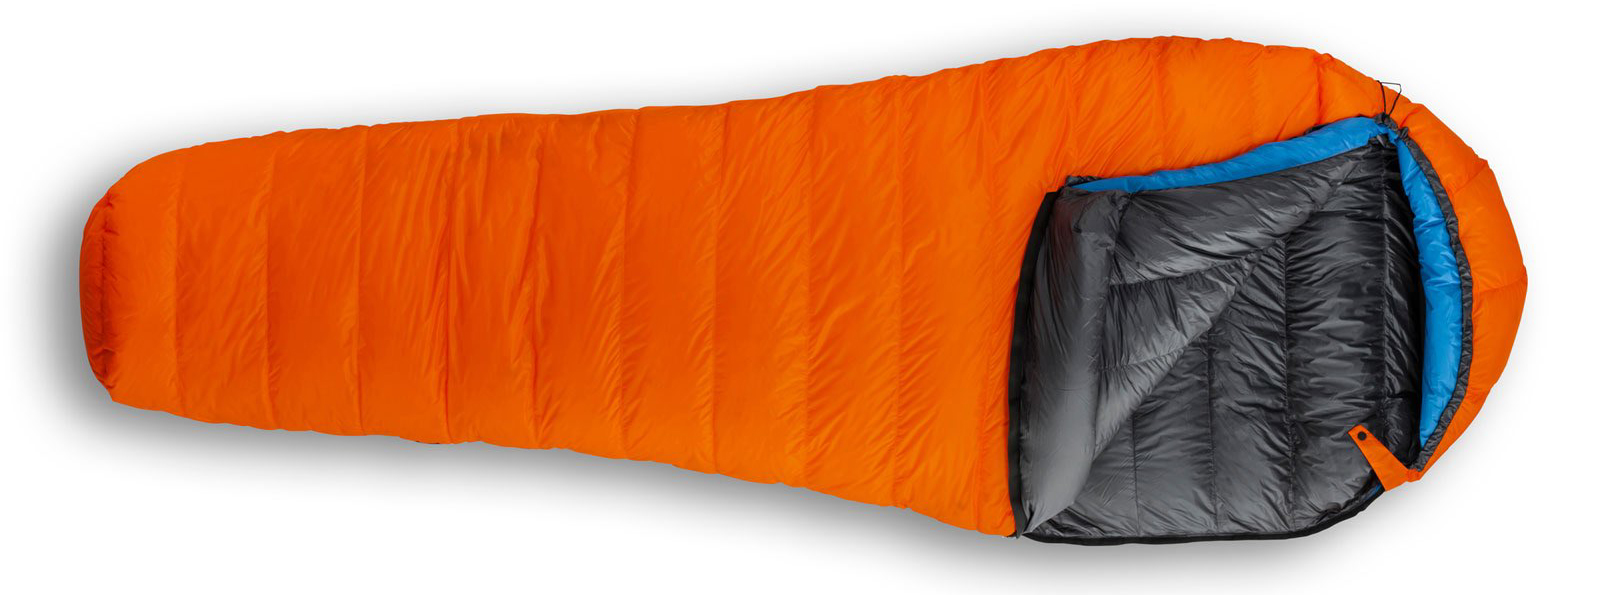 Feathered Friends Swallow UL sleeping bag